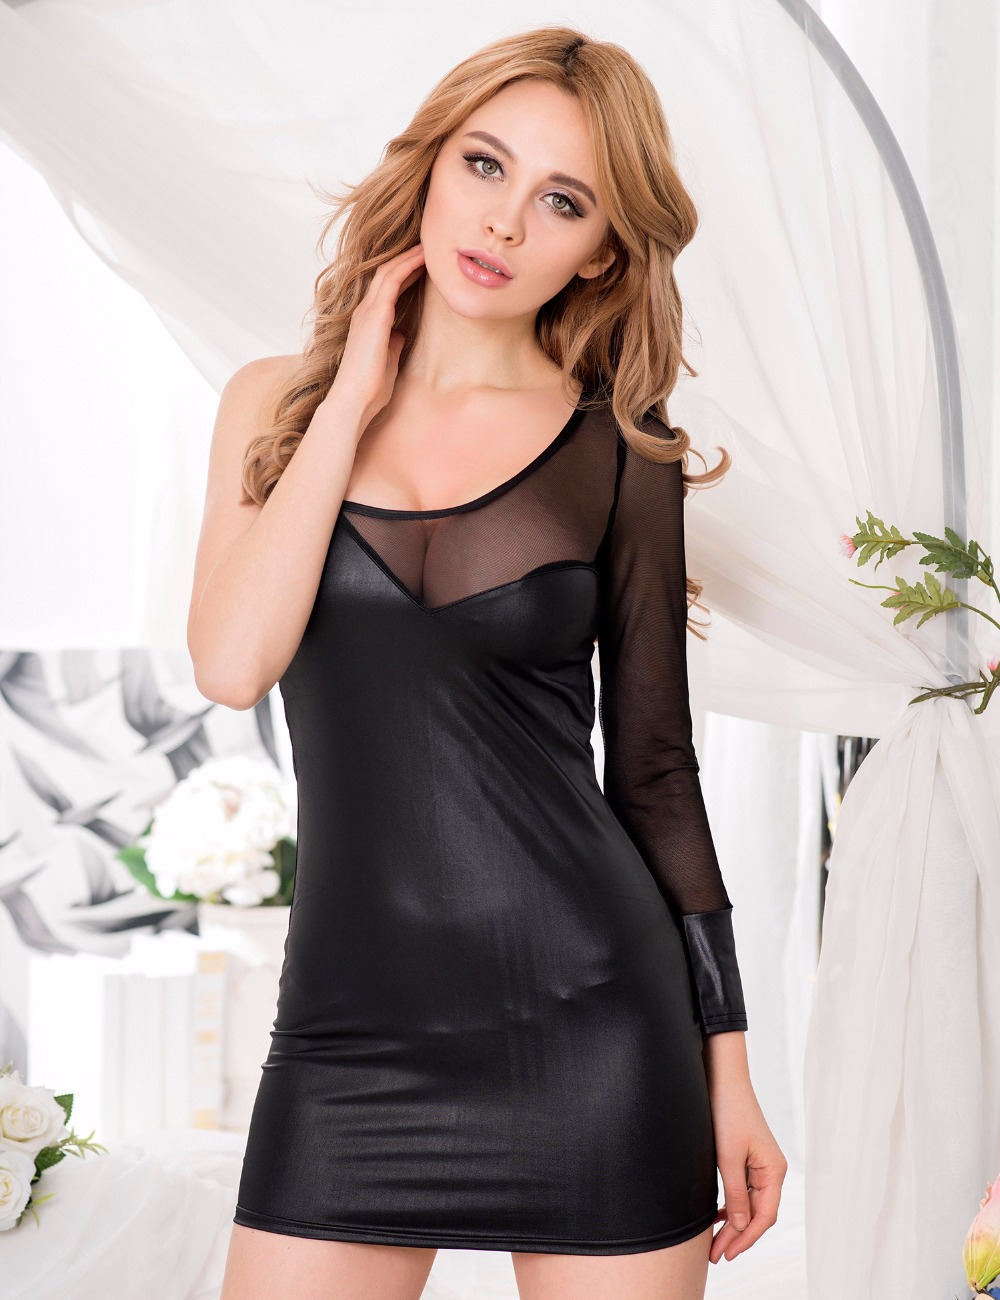 Nice R70139 Ohyeah Womens Sexy Dresses Erotic One-shoulder Faux Leather Sexy Clubwear Mesh Dress Short Hollow Out Exotic Apparel Babydolls & Chemises